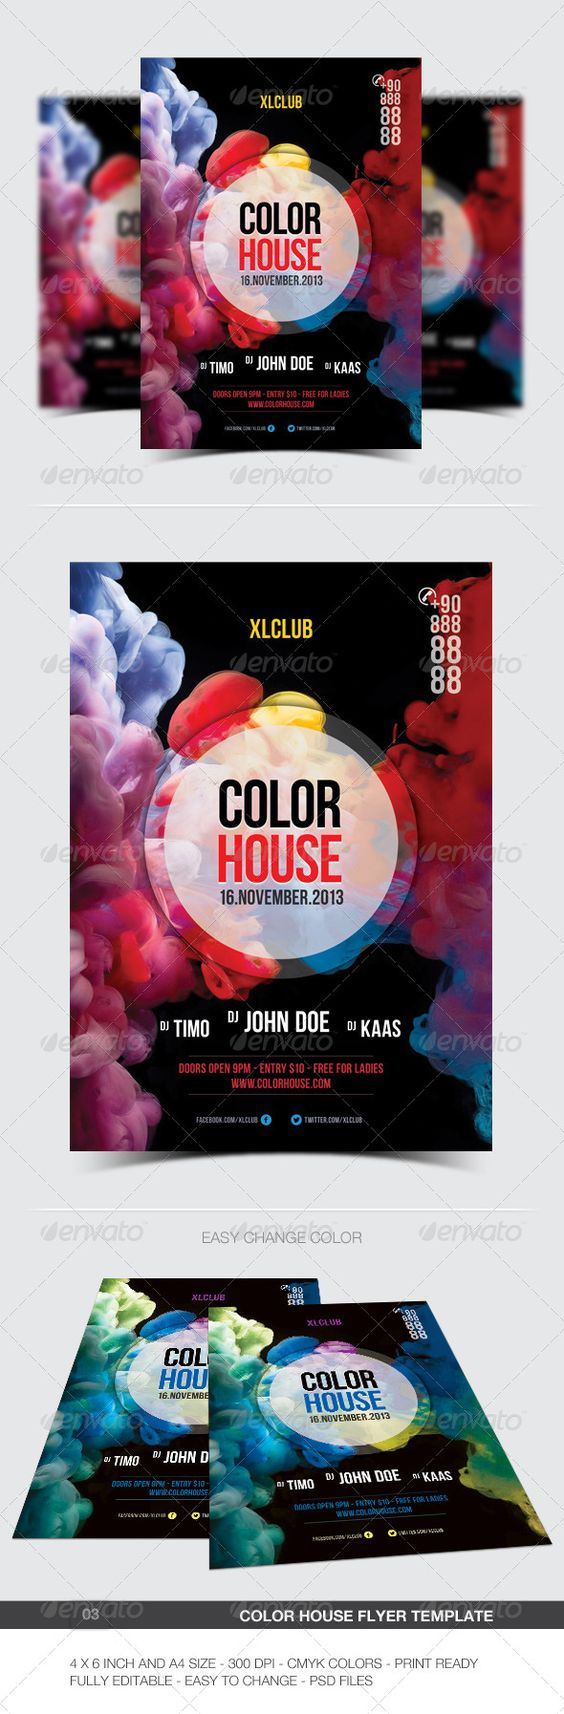 """Color House Flyer/Poster - 03 #GraphicRiver Color House Party/Flyer easy to edit text and elements, Features. 4×6 (4.25""""x6.25"""" with bleed ) and A4 size 300 DPI CMYK Print Ready! Full Editable, Layered 2 PSD Files Font used. Bebas Neue .dafont /bebas-neue.font Please dont forget to rate it… Created: 5November13 GraphicsFilesIncluded: PhotoshopPSD Layered: Yes MinimumAdobeCSVersion: CS"""